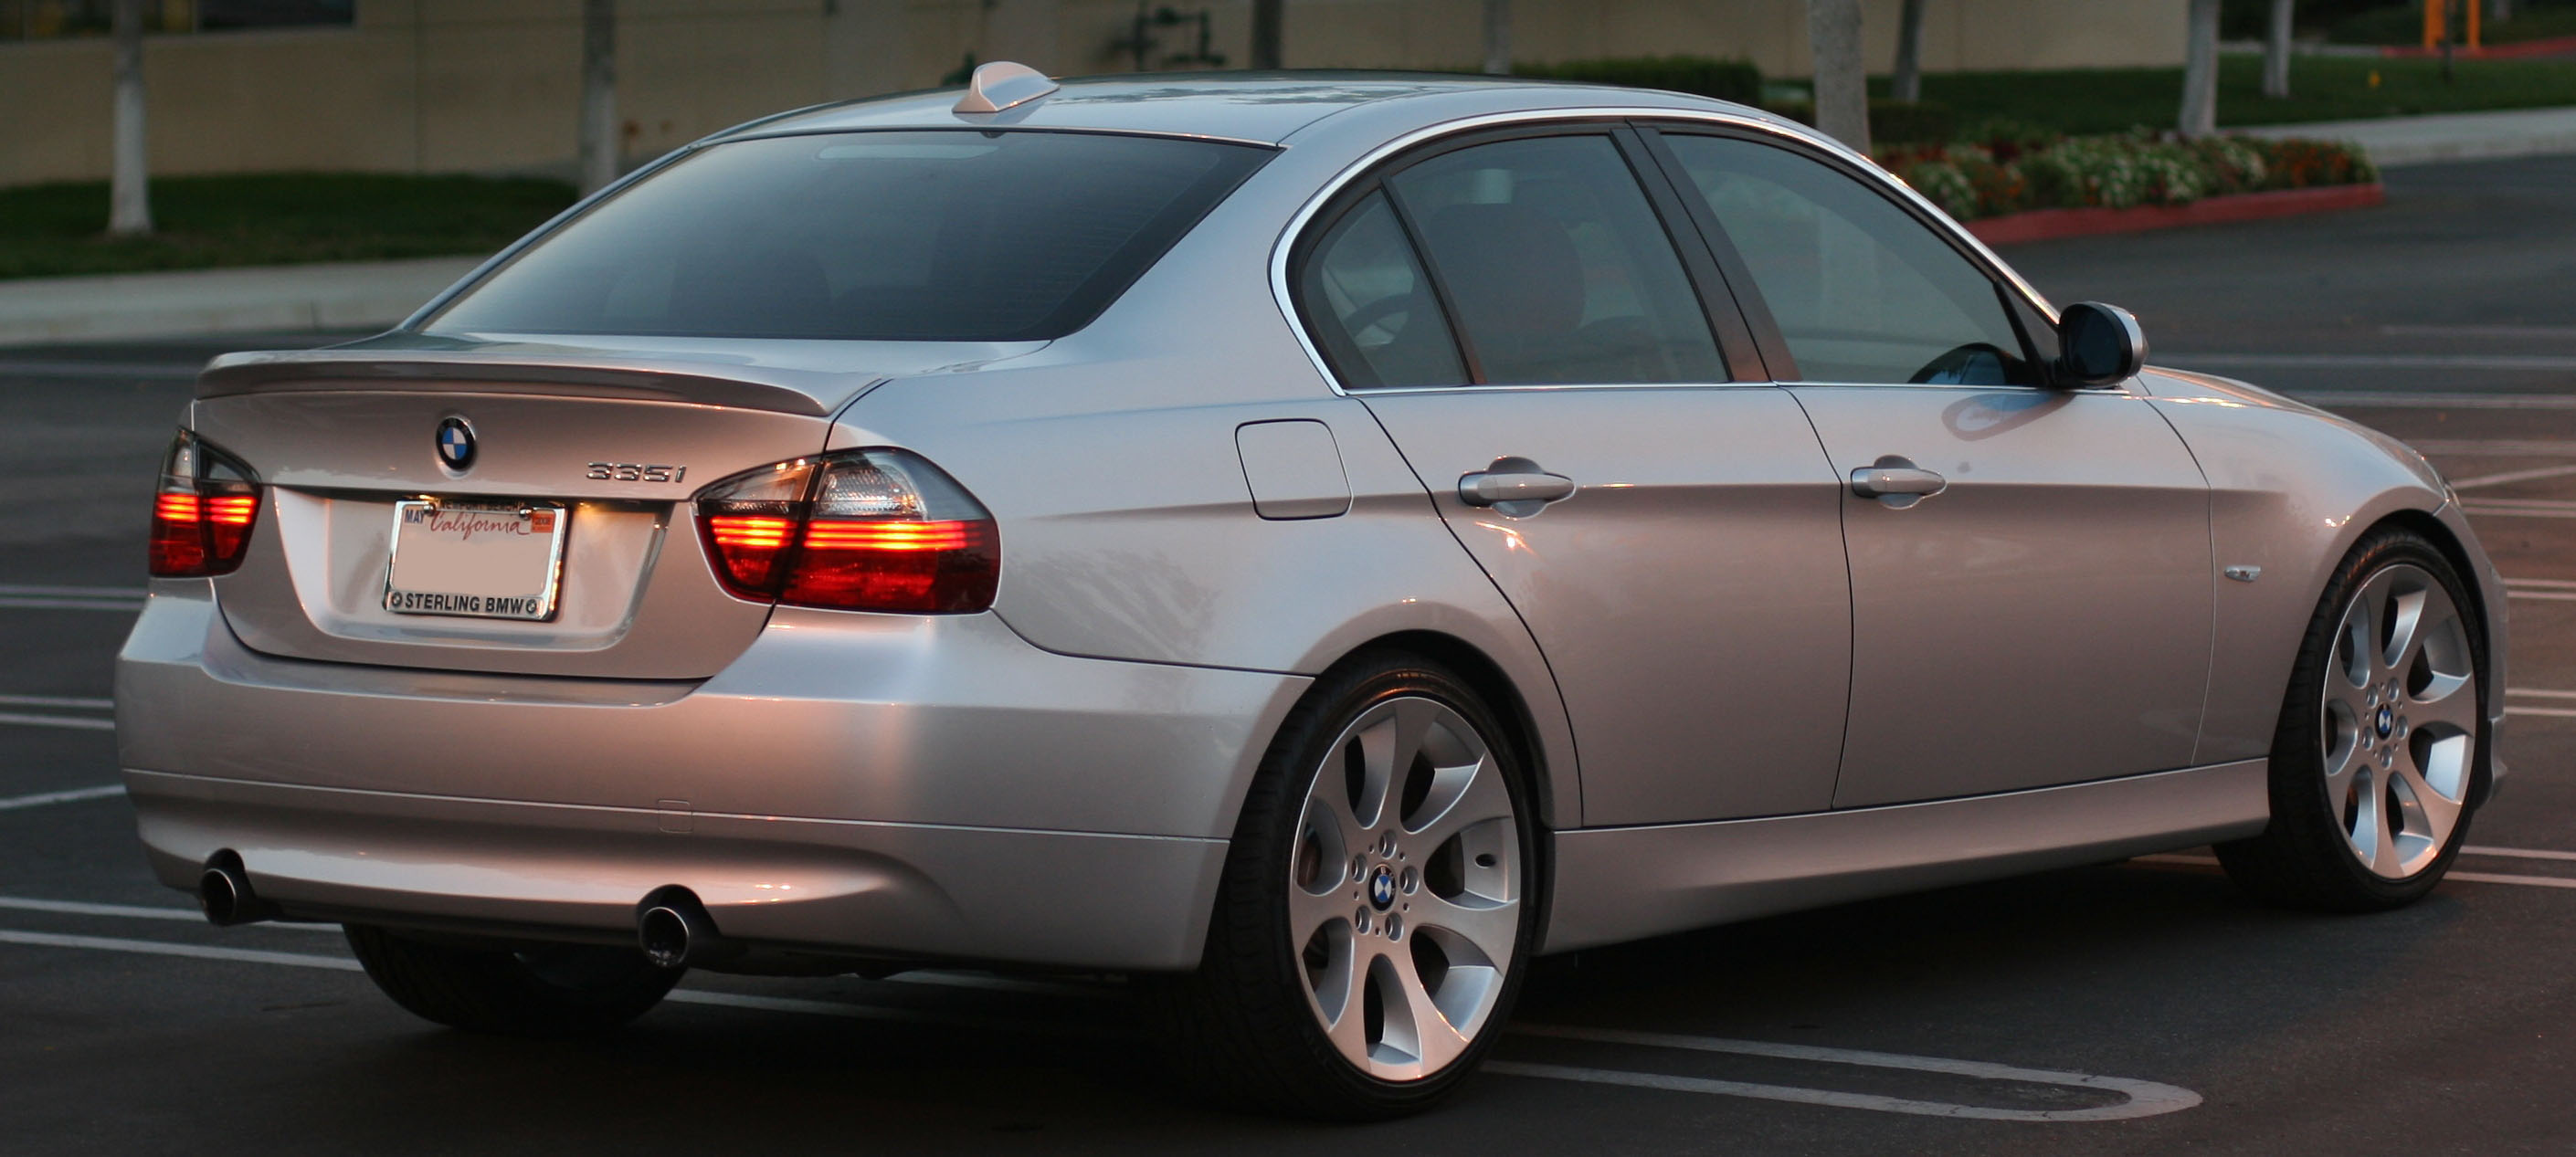 BMW I Sedan AT JBH Mile Drag Racing Timeslip Specs - 2007 bmw 335i performance upgrades